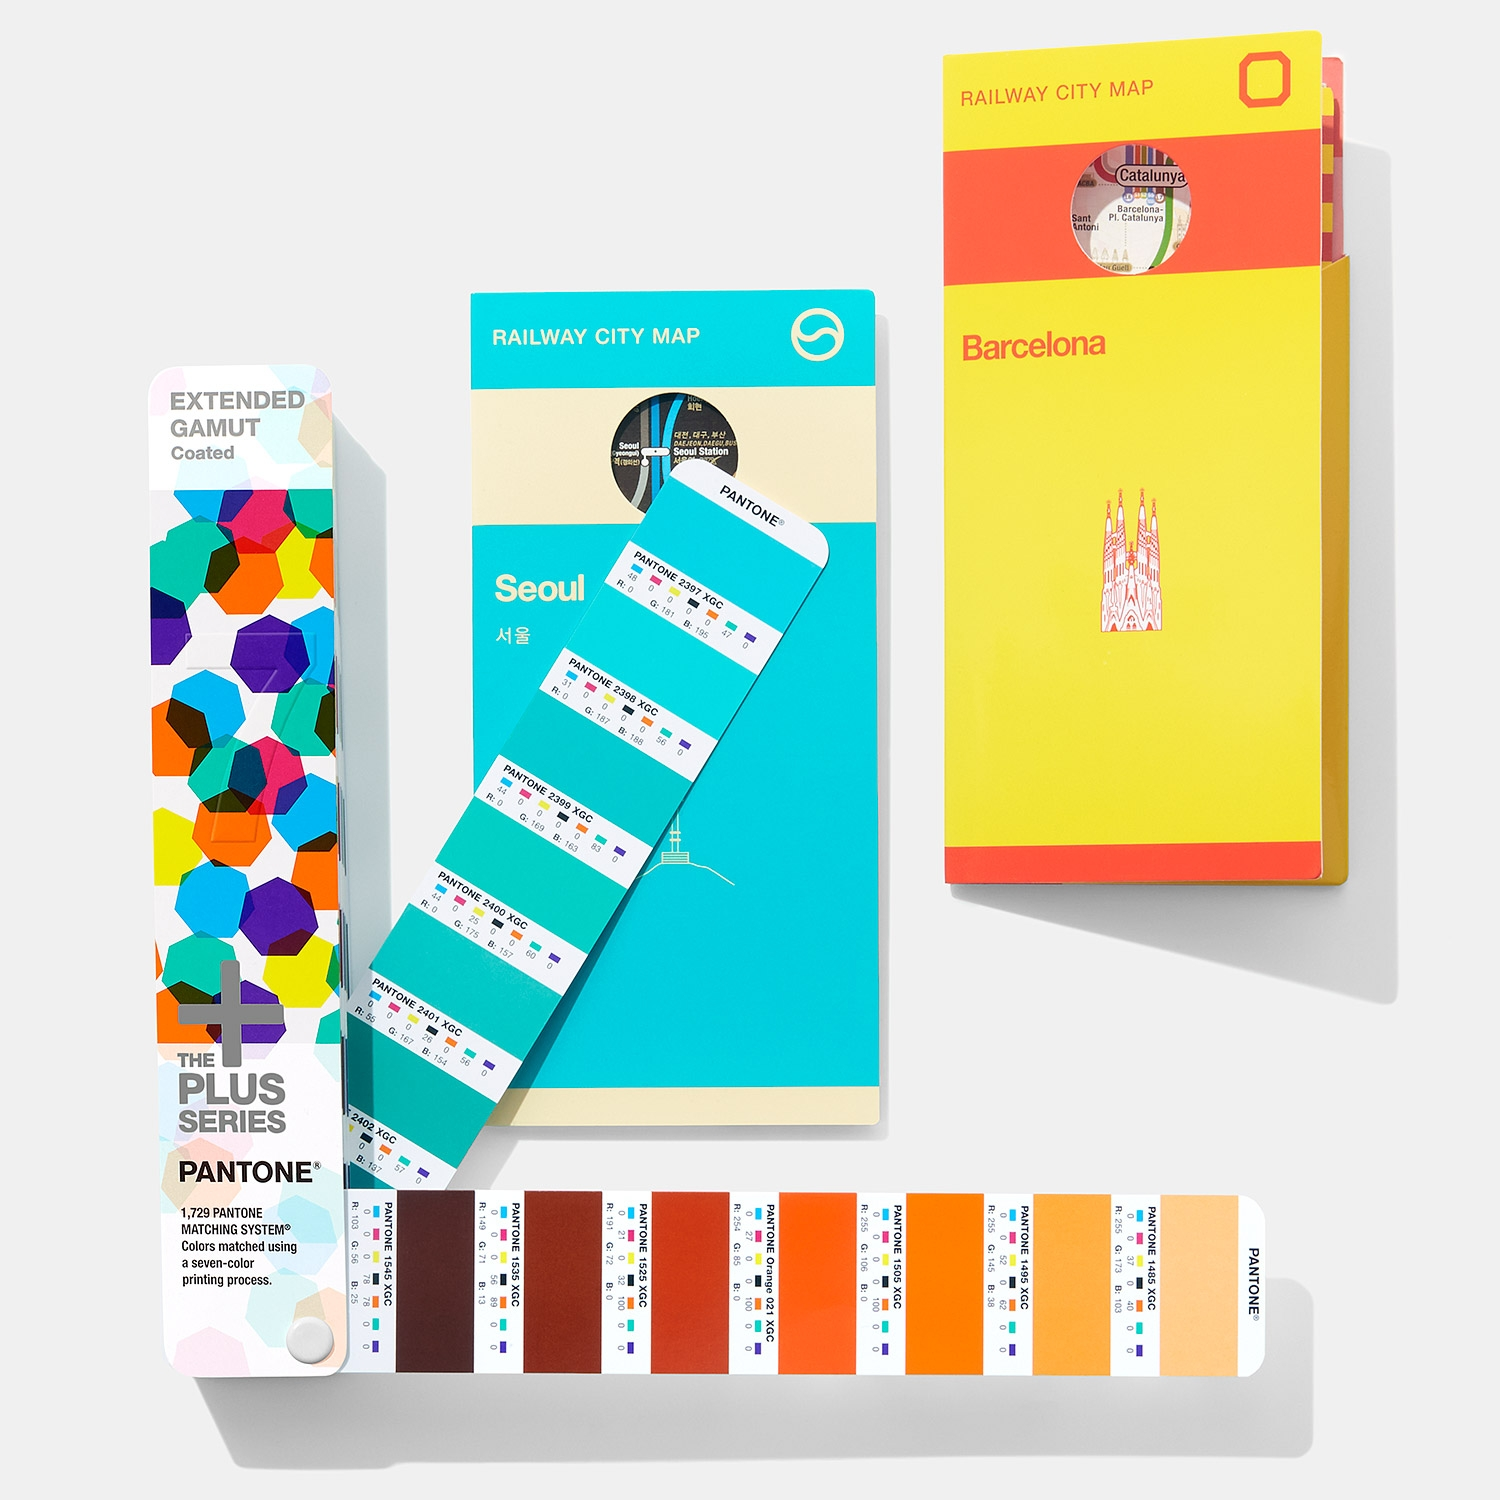 Pantone Extended Gamut Coated Guide - View 4